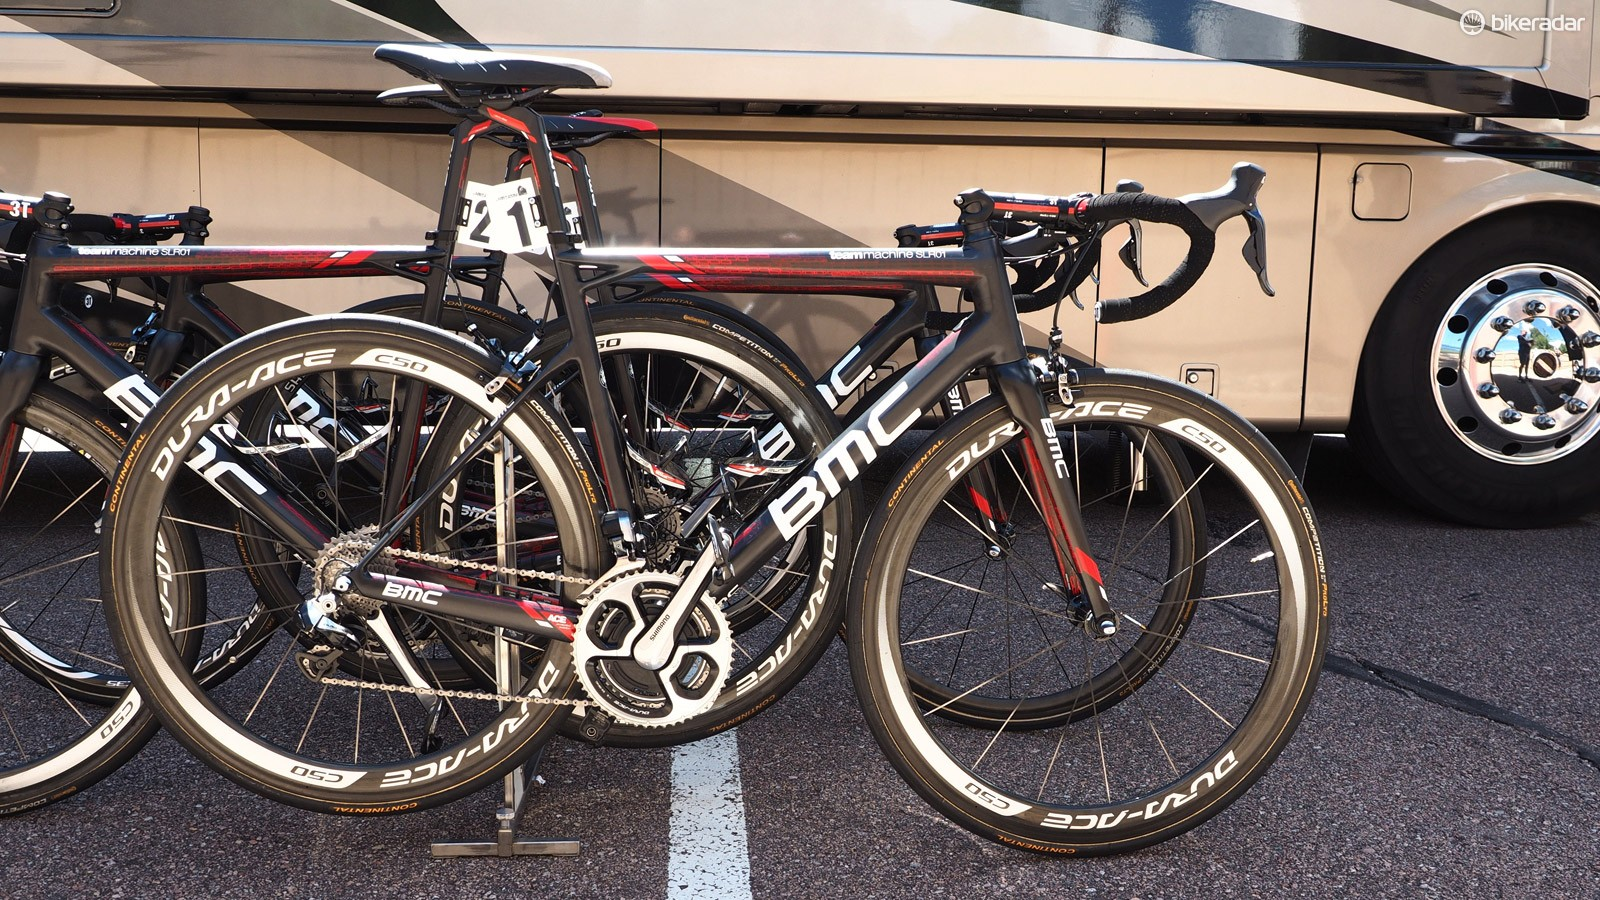 Tejay van Garderen (BMC) is racing at the USA Pro Cycling Challenge aboard a BMC TeamMachine SLR01